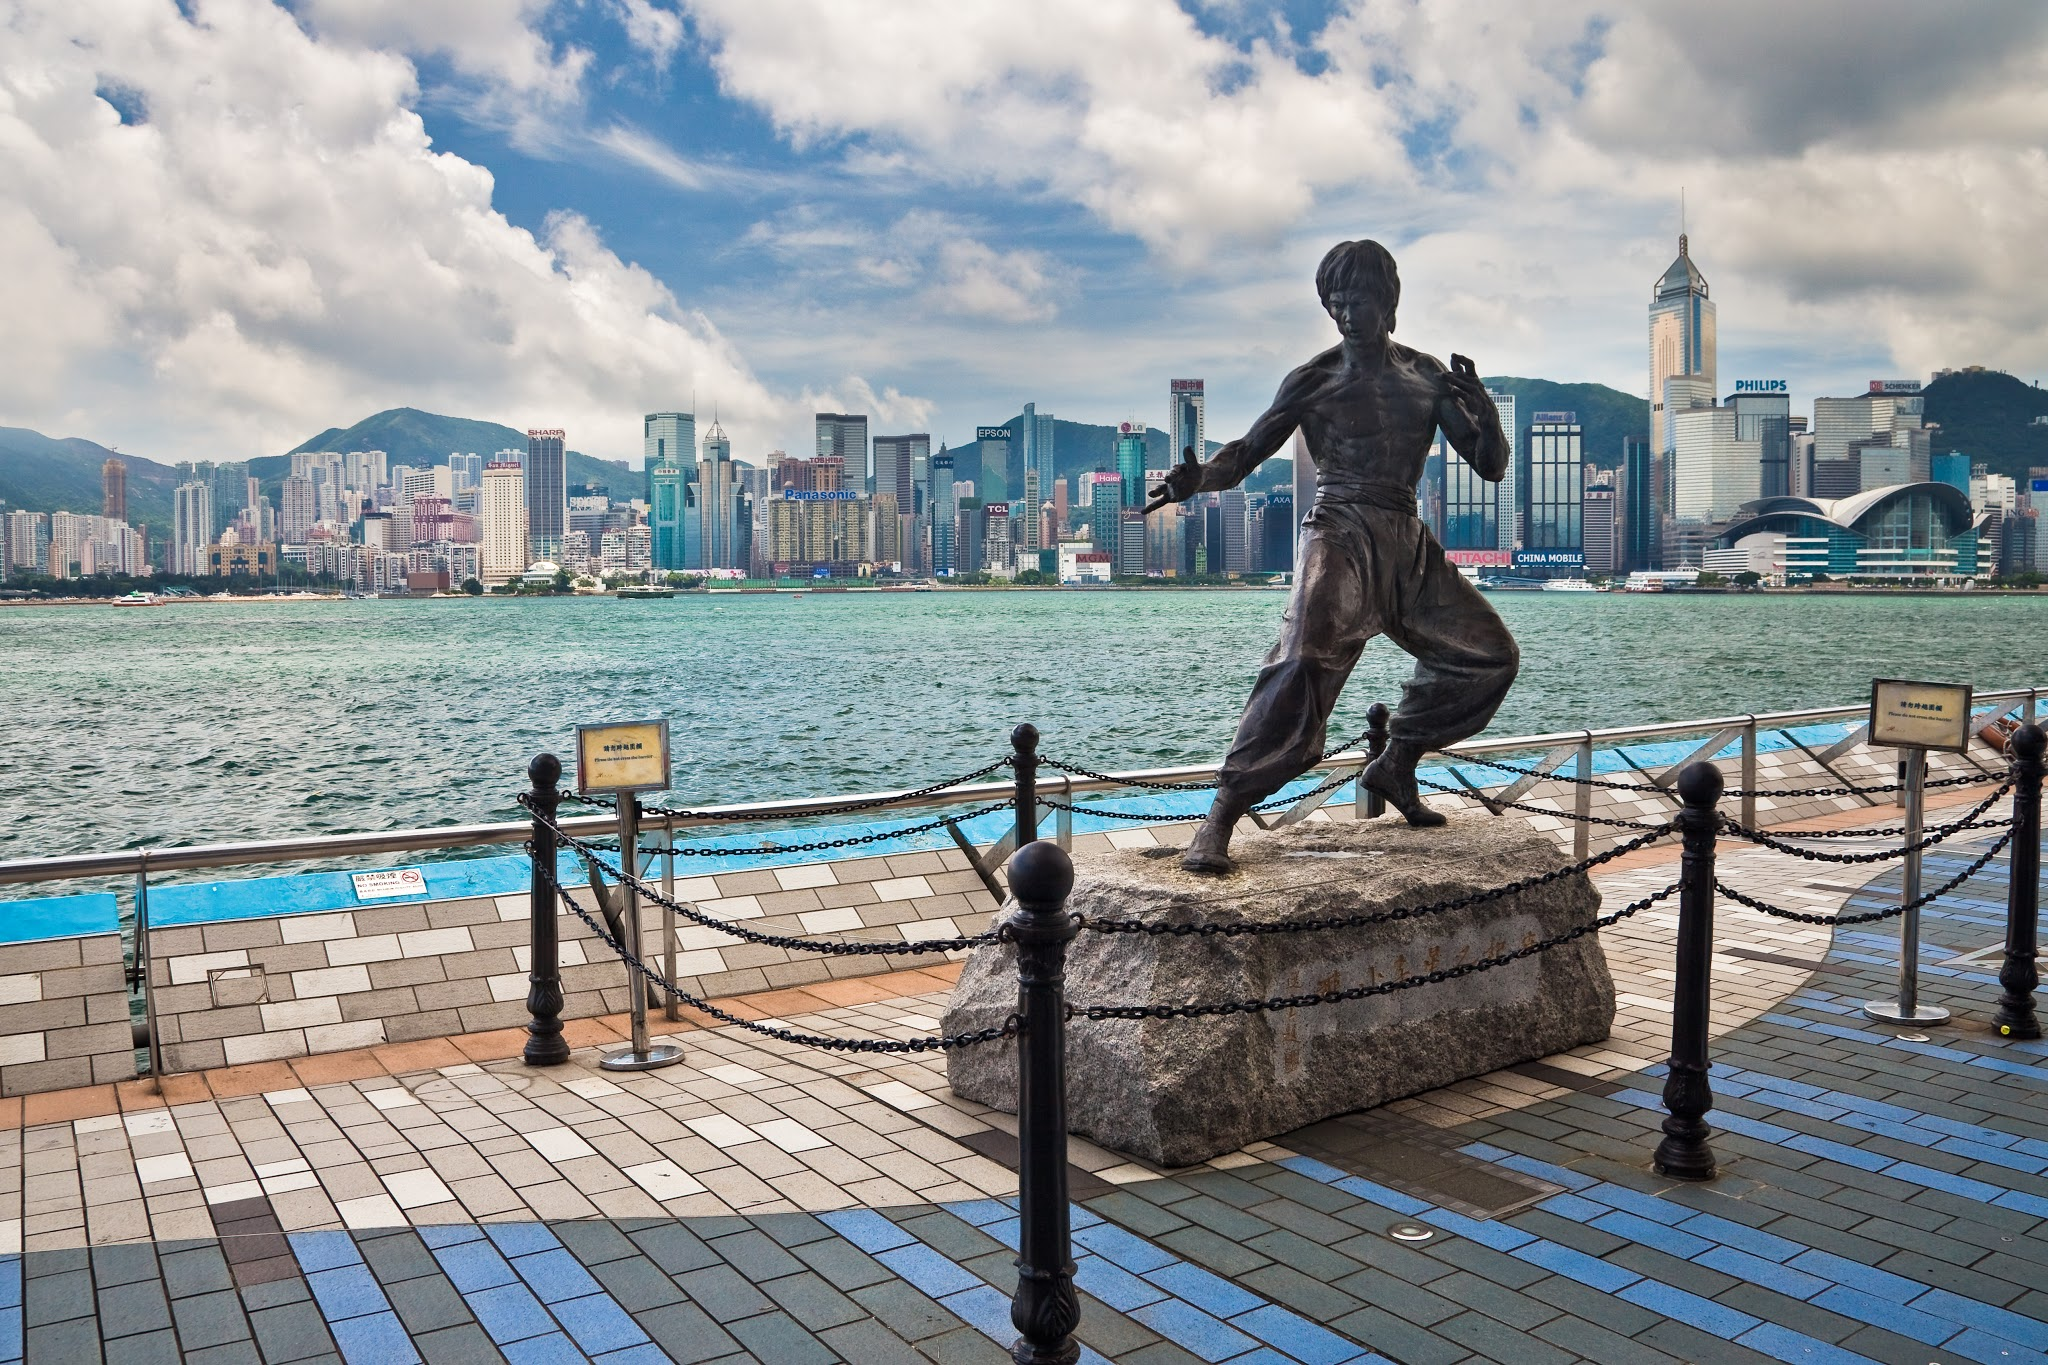 avenue of star, tst, tsim sha tsui, Bruce Lee, Ku Fu Star